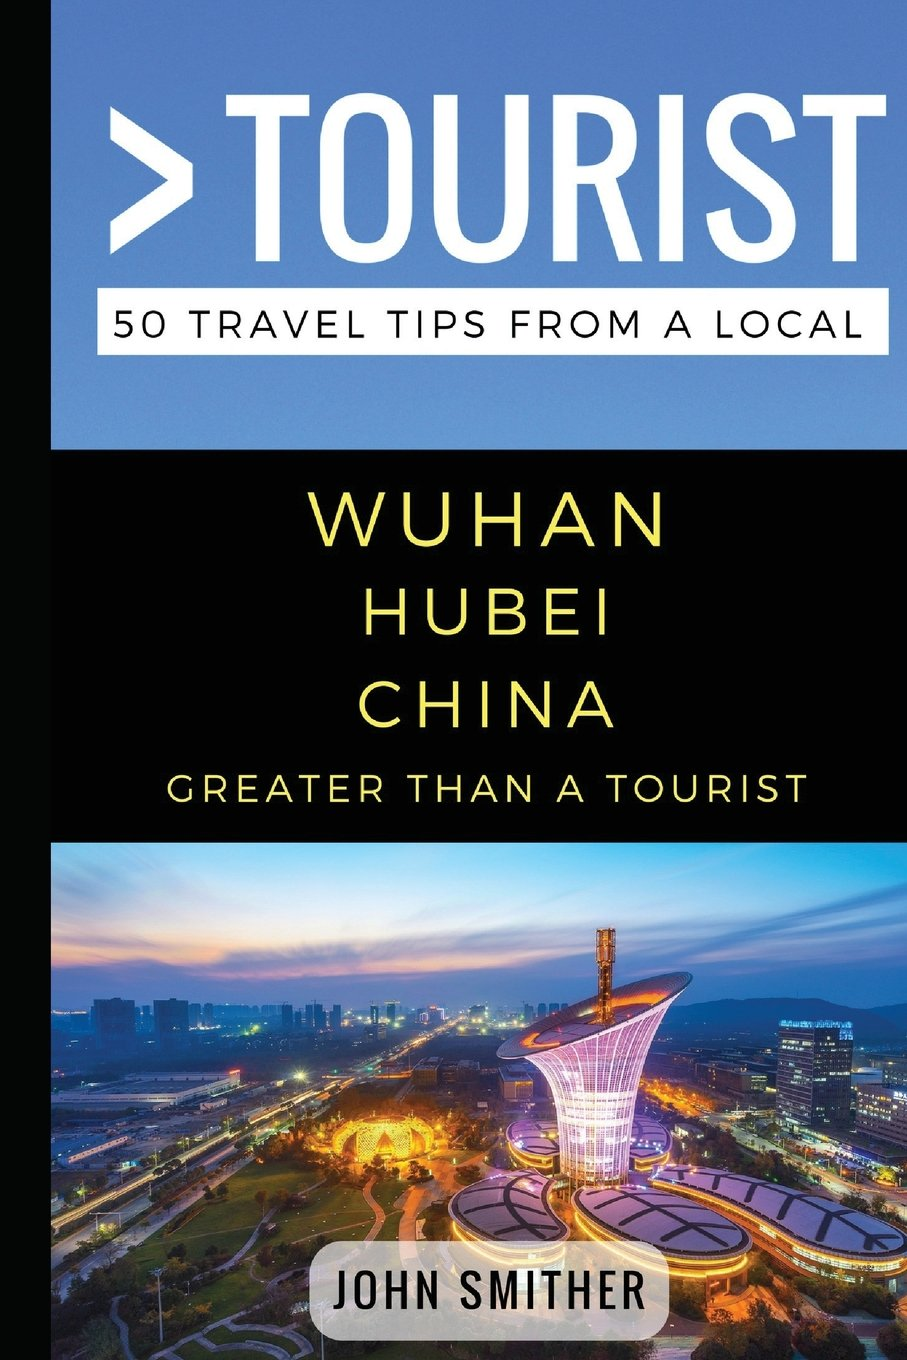 Download Greater Than a Tourist- Wuhan Hubei China: 50 Travel Tips from a Local pdf